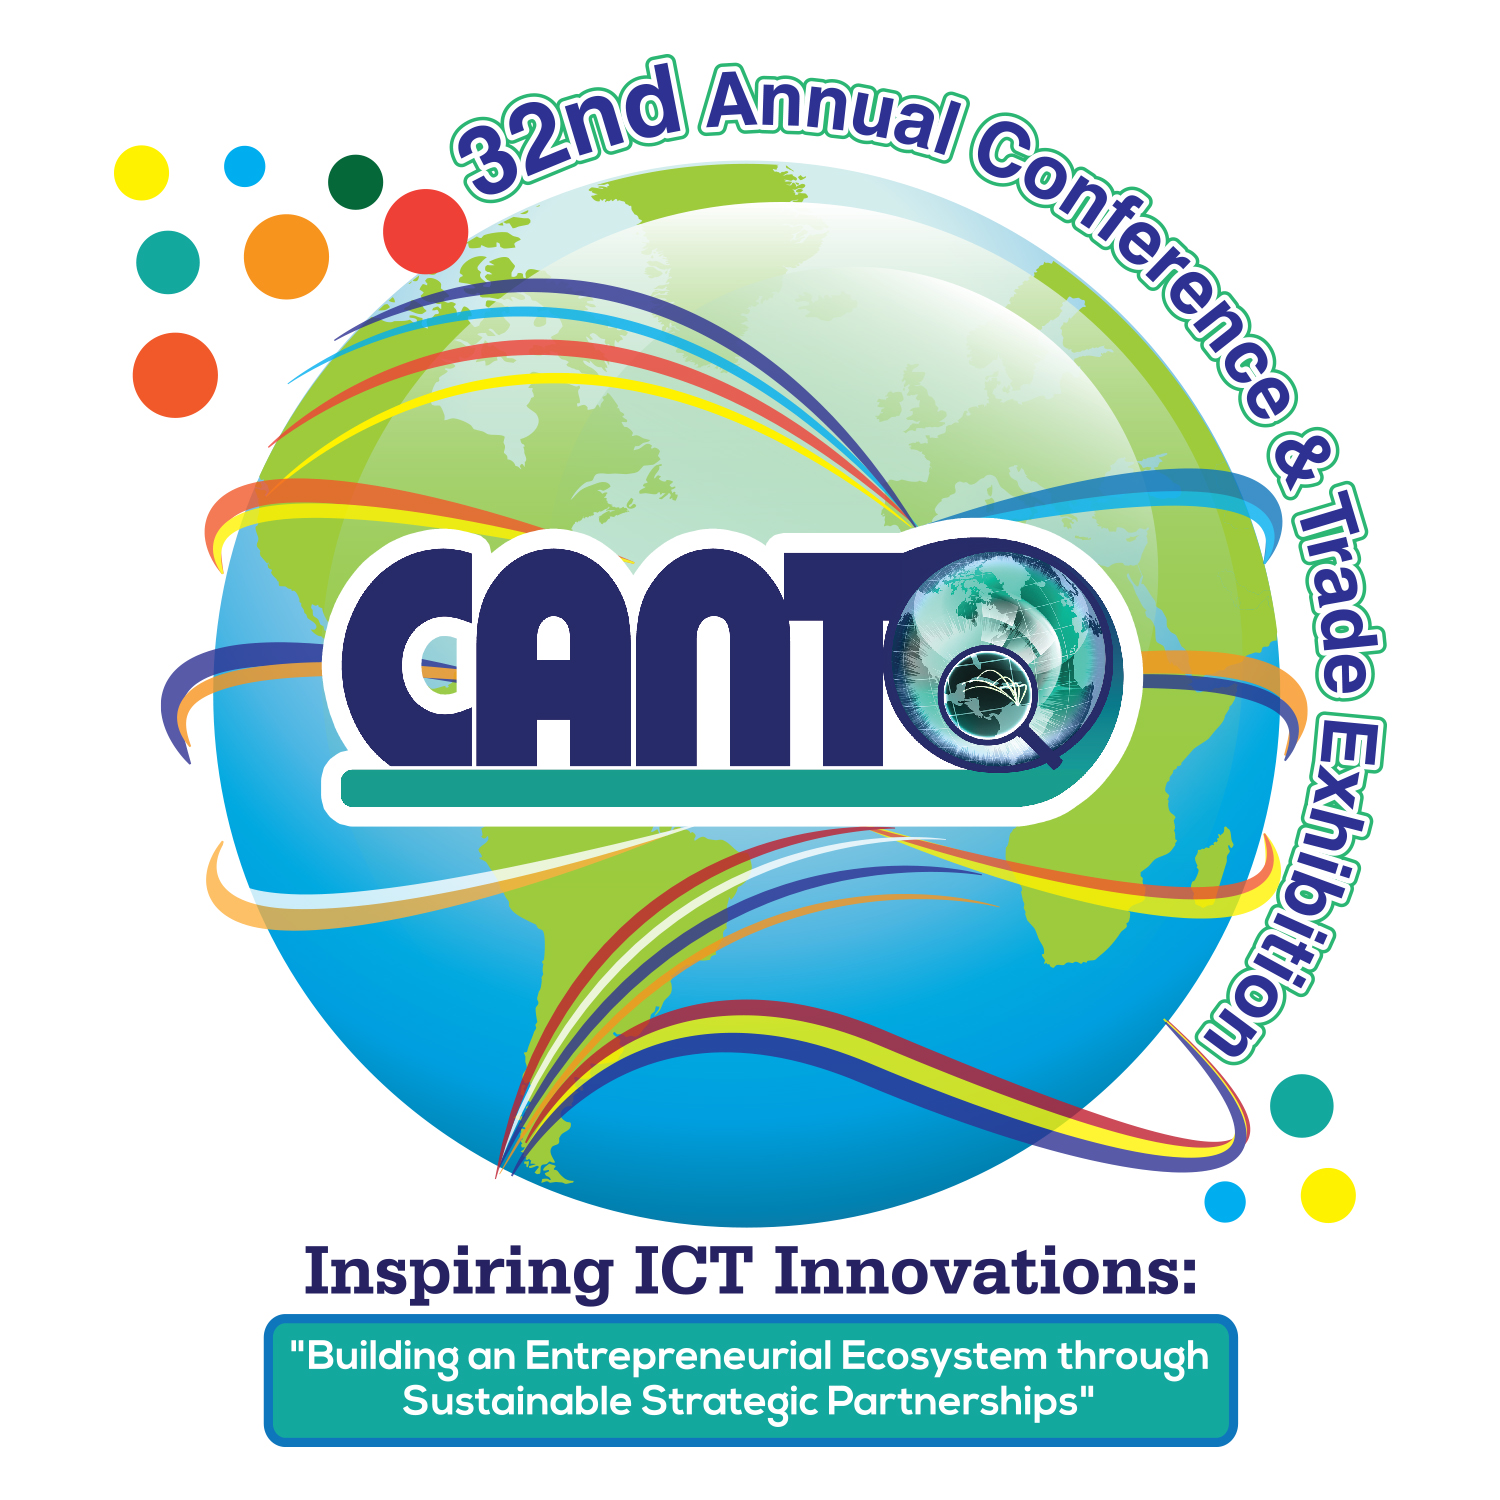 CANTO's 32nd Annual Conference & Trade Exhibition